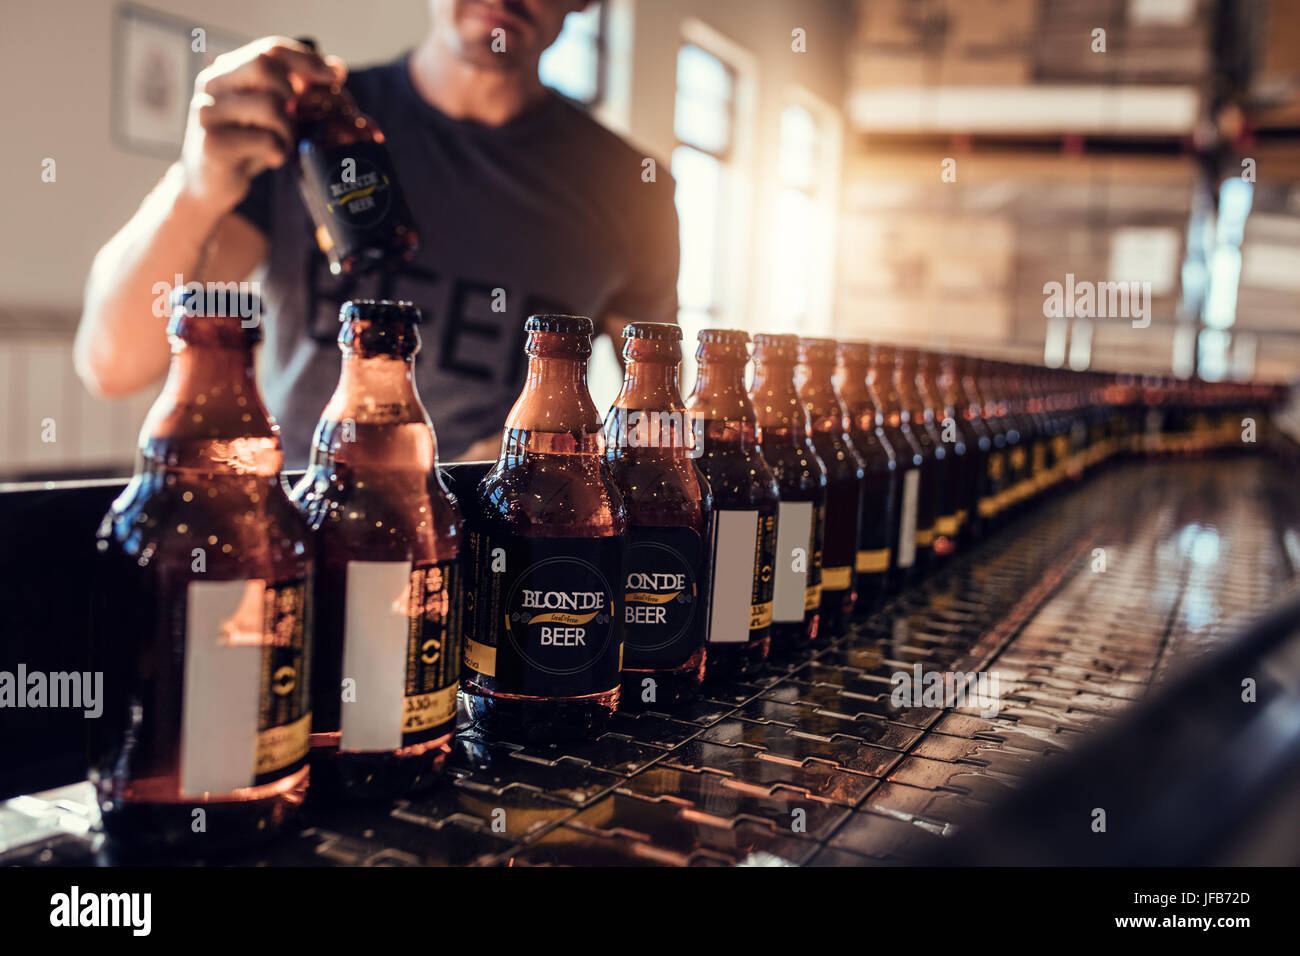 Conveyor with beer bottles moving in brewery factory. Young man supervising the beer bottling process and checking - Stock Image